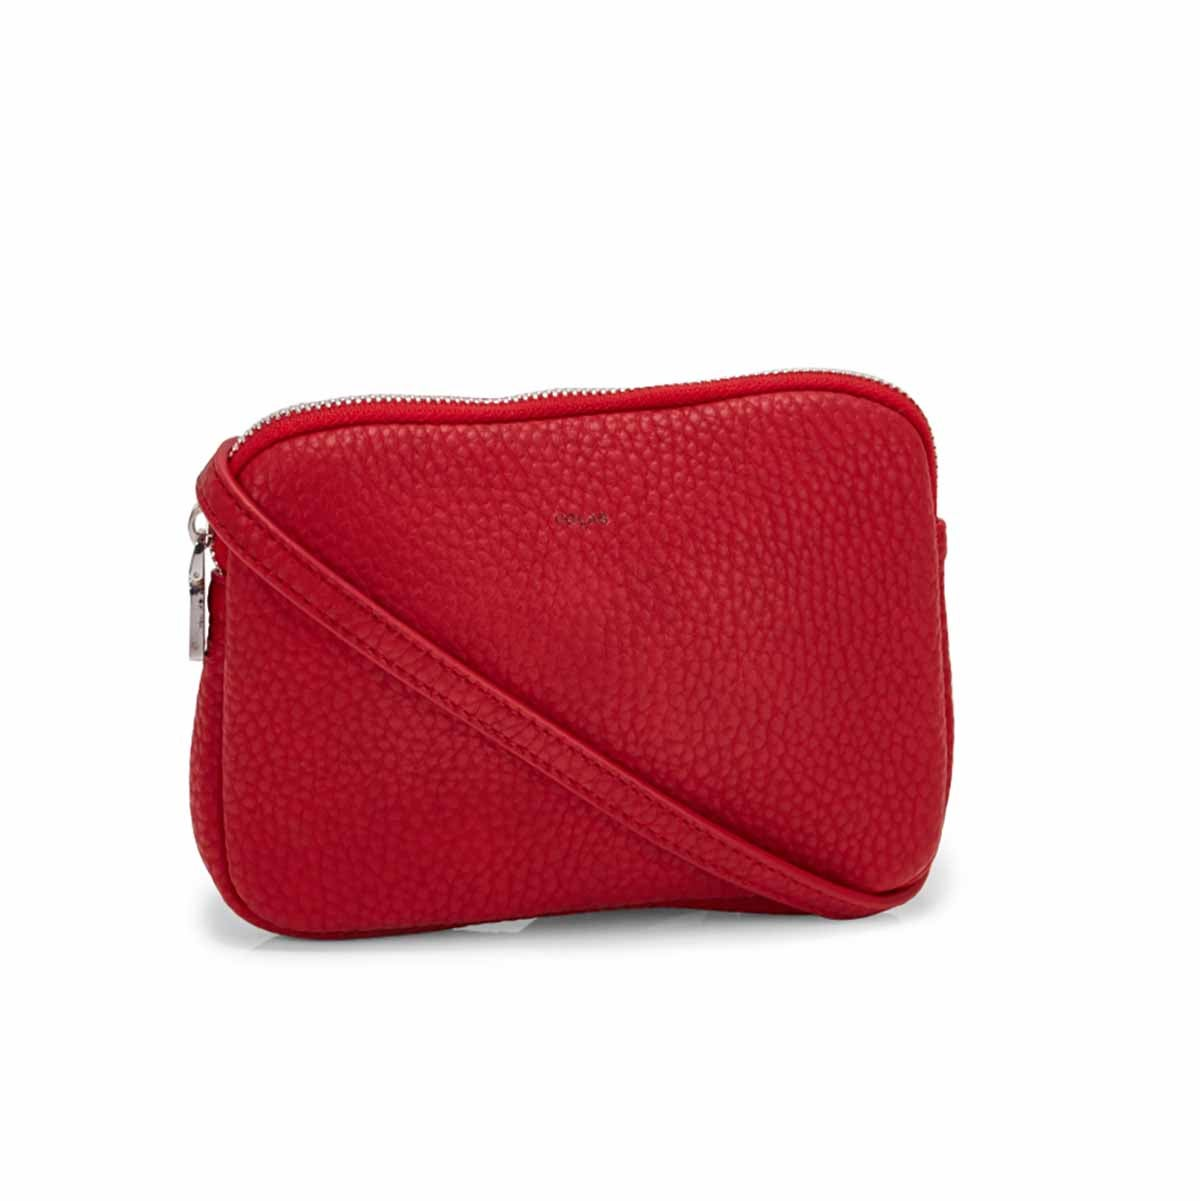 Lds Sydney Crossbody red zip up wallet